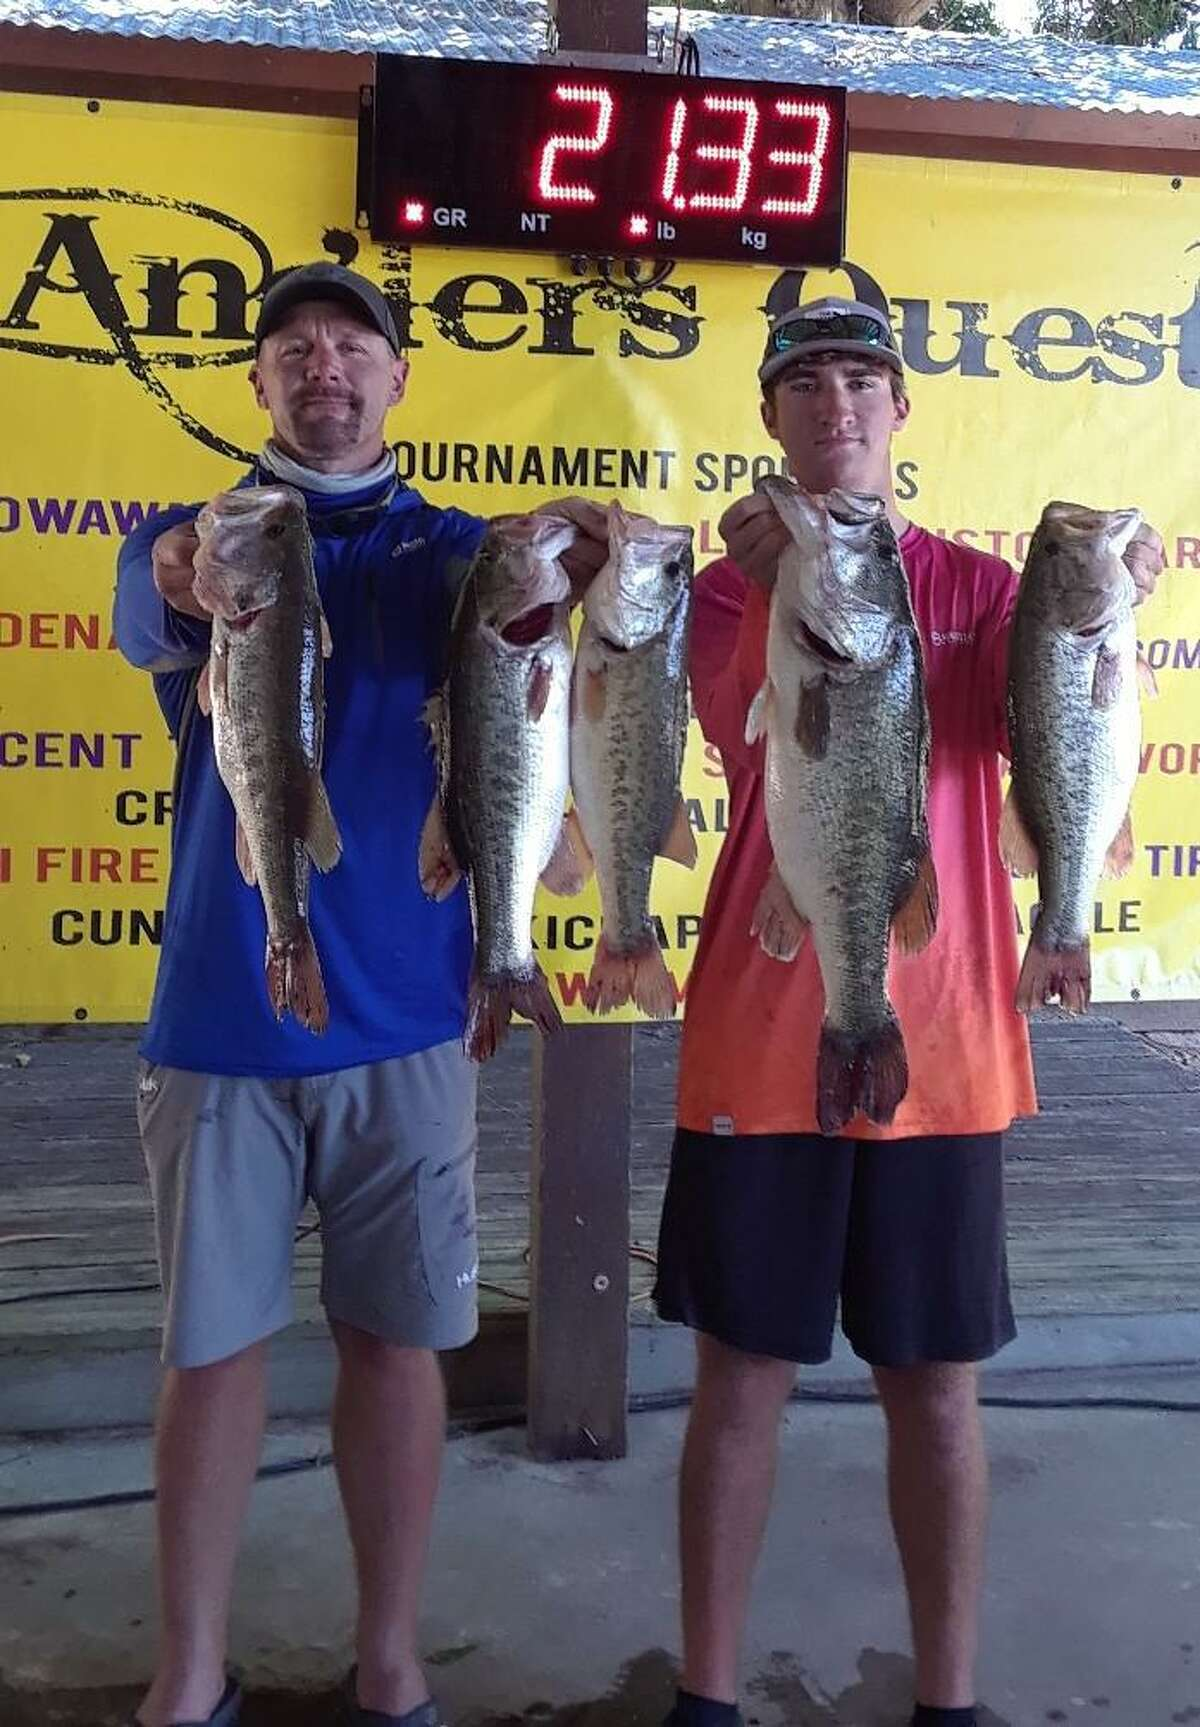 Jason Slot and Mason Roach won the Anglers Quest Team Team Tournament #6 with a total weight of 21.33 pounds.